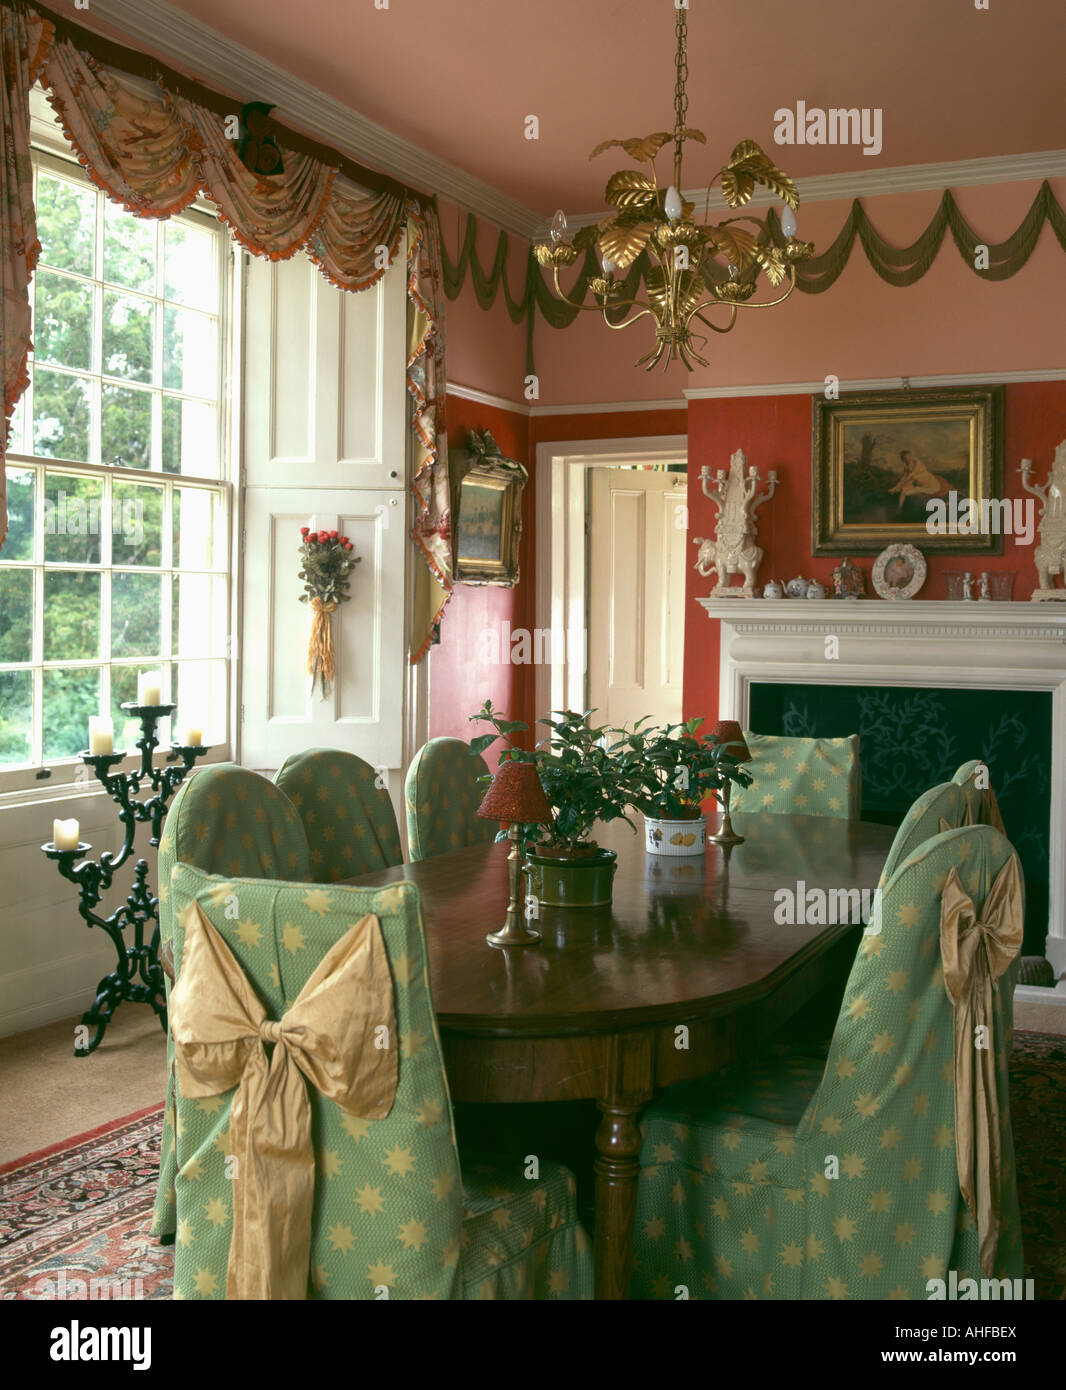 Terrific Green Loosecovers With Bows On Chairs In Nineties Peach Lamtechconsult Wood Chair Design Ideas Lamtechconsultcom